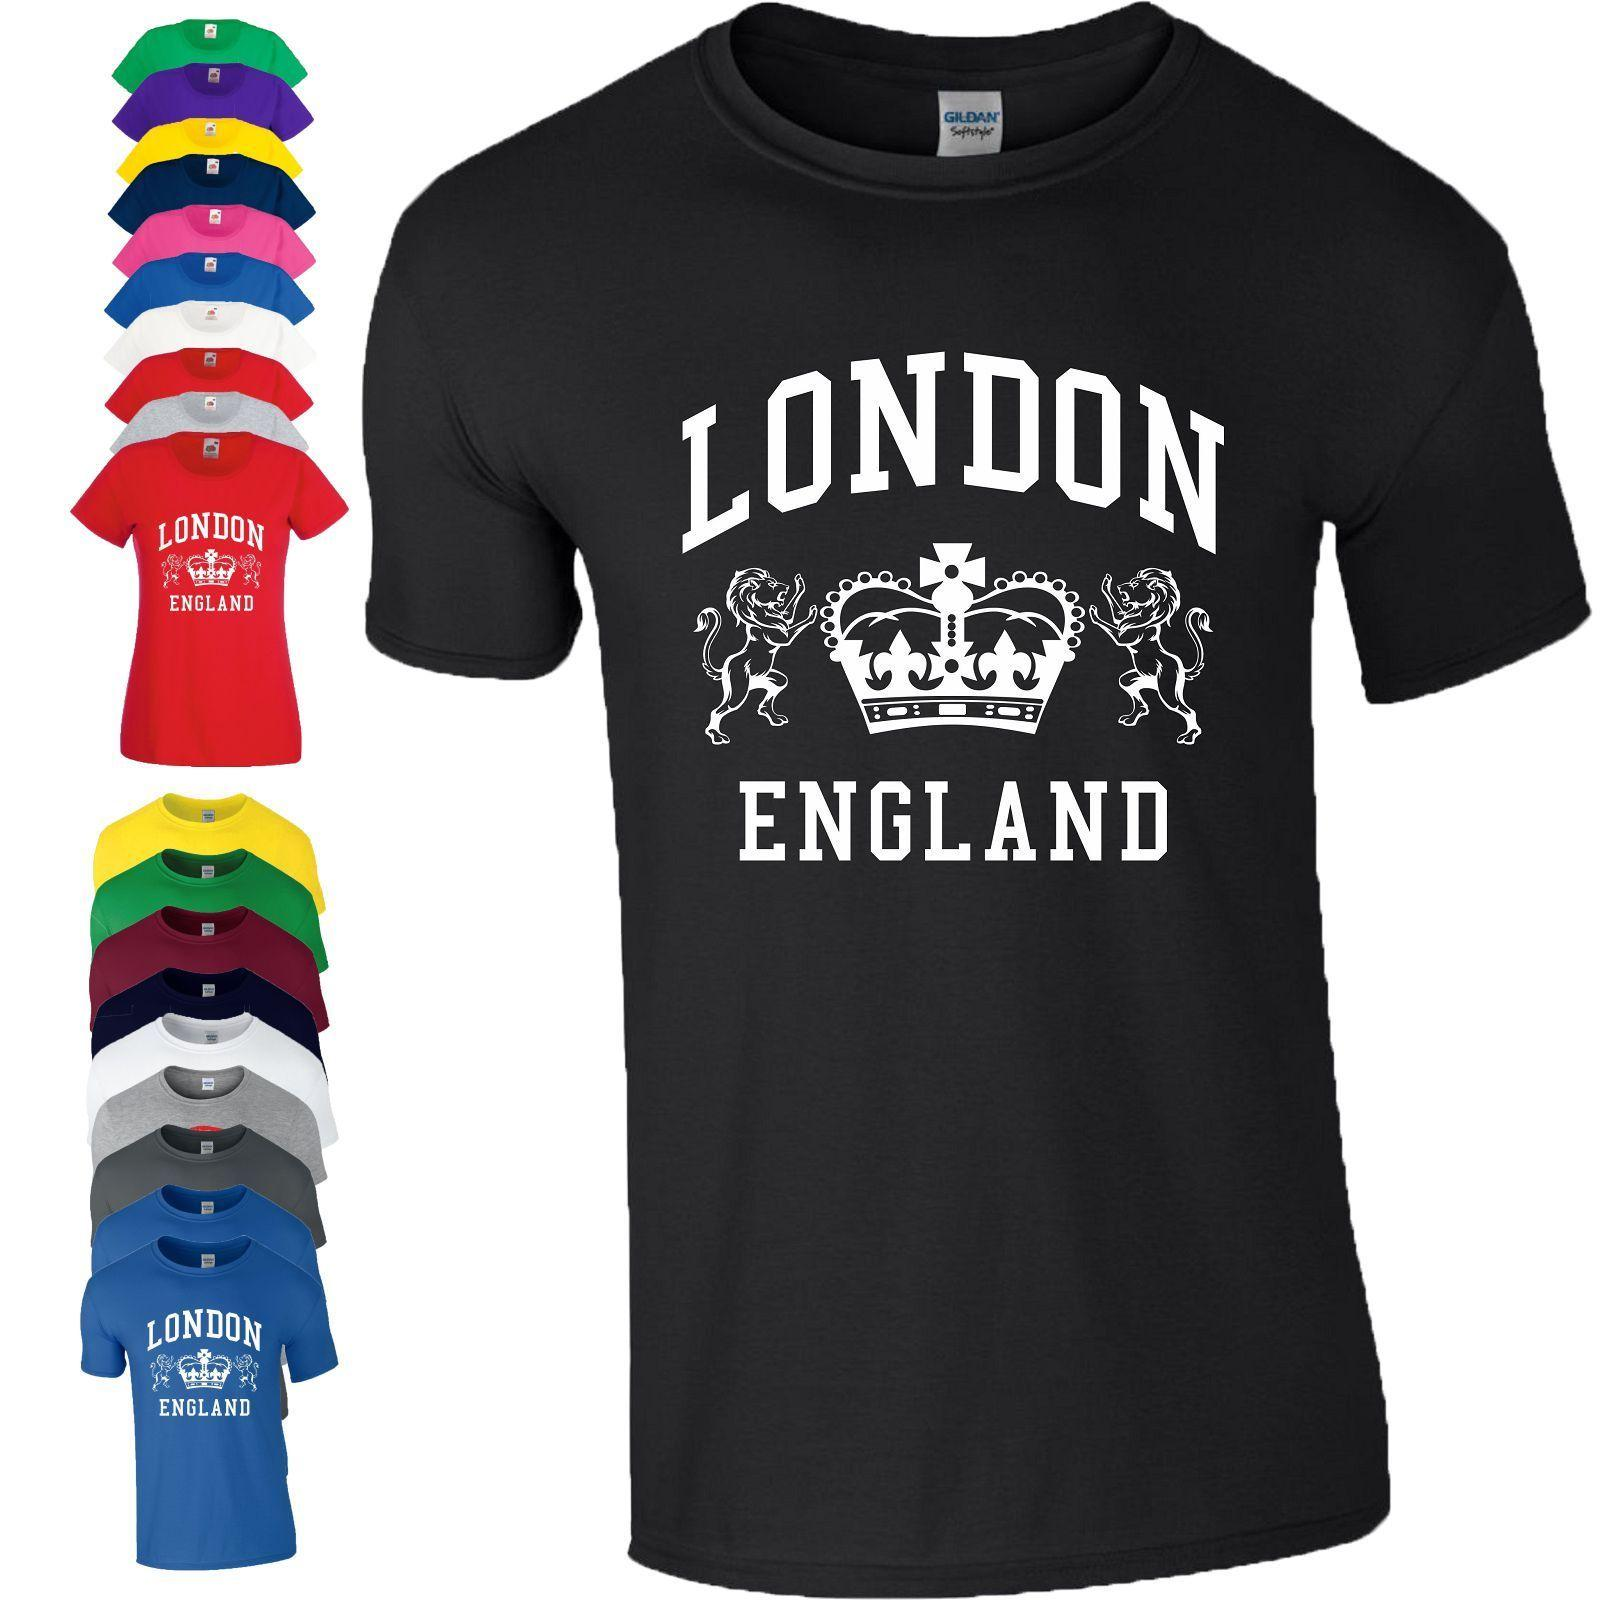 London England T Shirt Novelty Souvenir Tourist Holiday Birthday Gift Men Ladies Ridiculous Shirts Awesome Tshirt Designs From Bstdhgate 1101